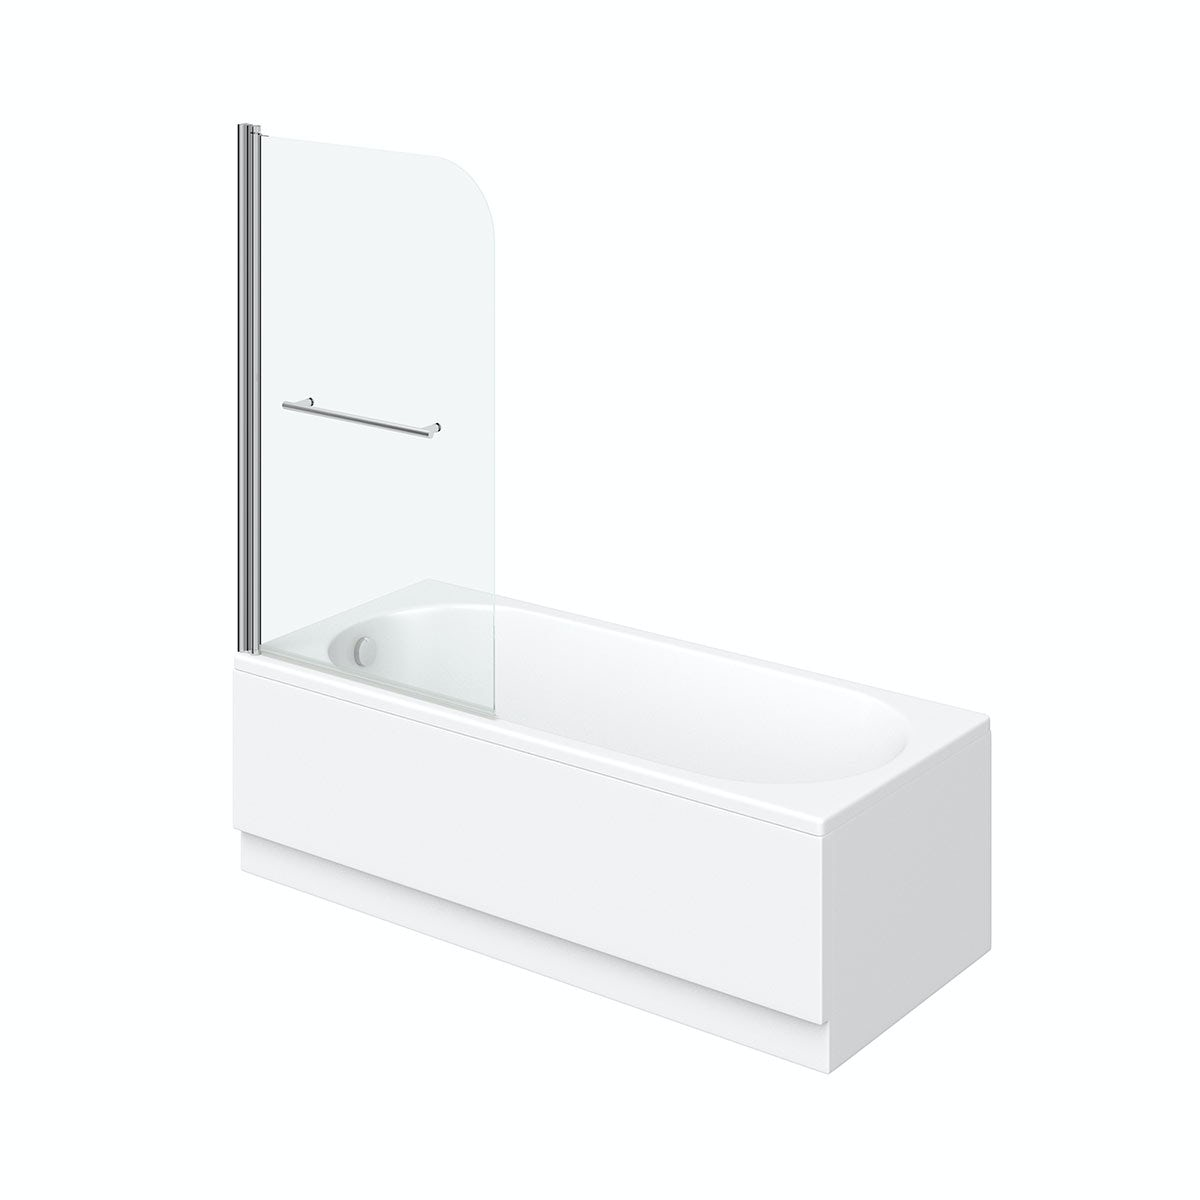 Orchard round edge straight shower bath with 6mm shower screen and rail